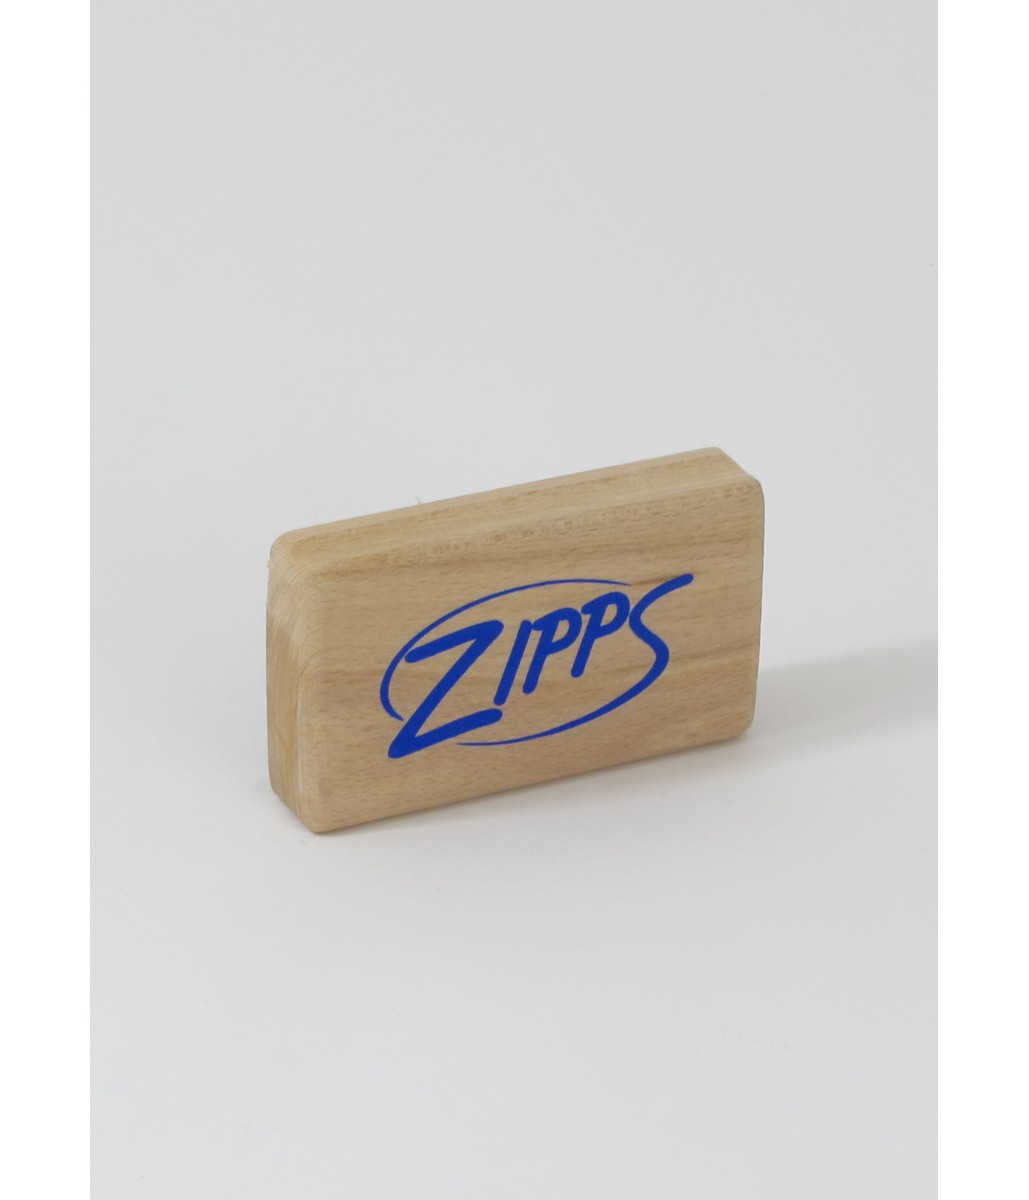 ZIPPS ABRASIVE BRUSH